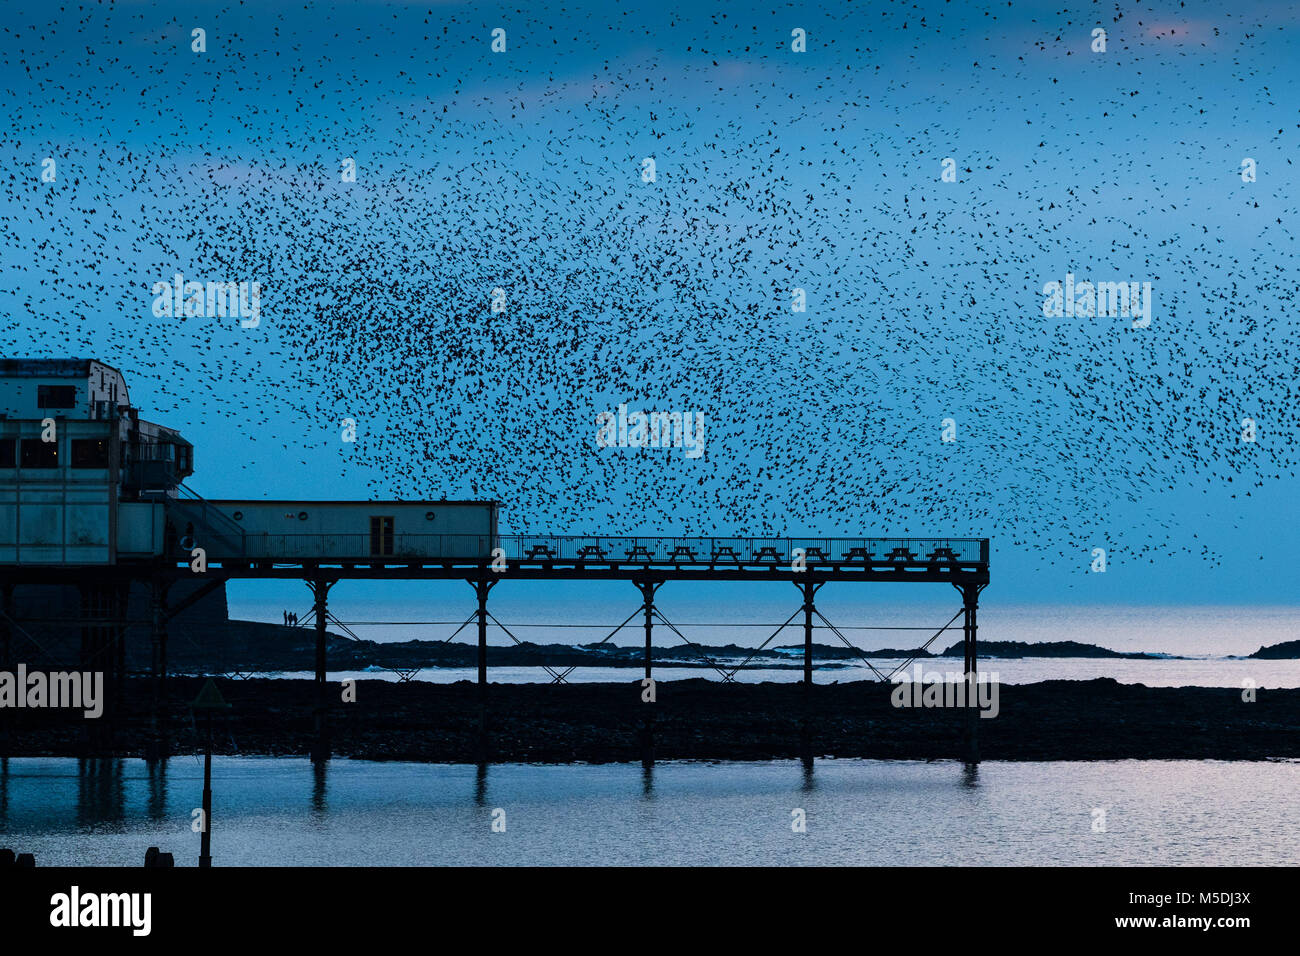 Aberystwyth Wales UK, Thursday  22 Feb 2018  UK Weather:  In the steel blue light of a cold February evening in Stock Photo